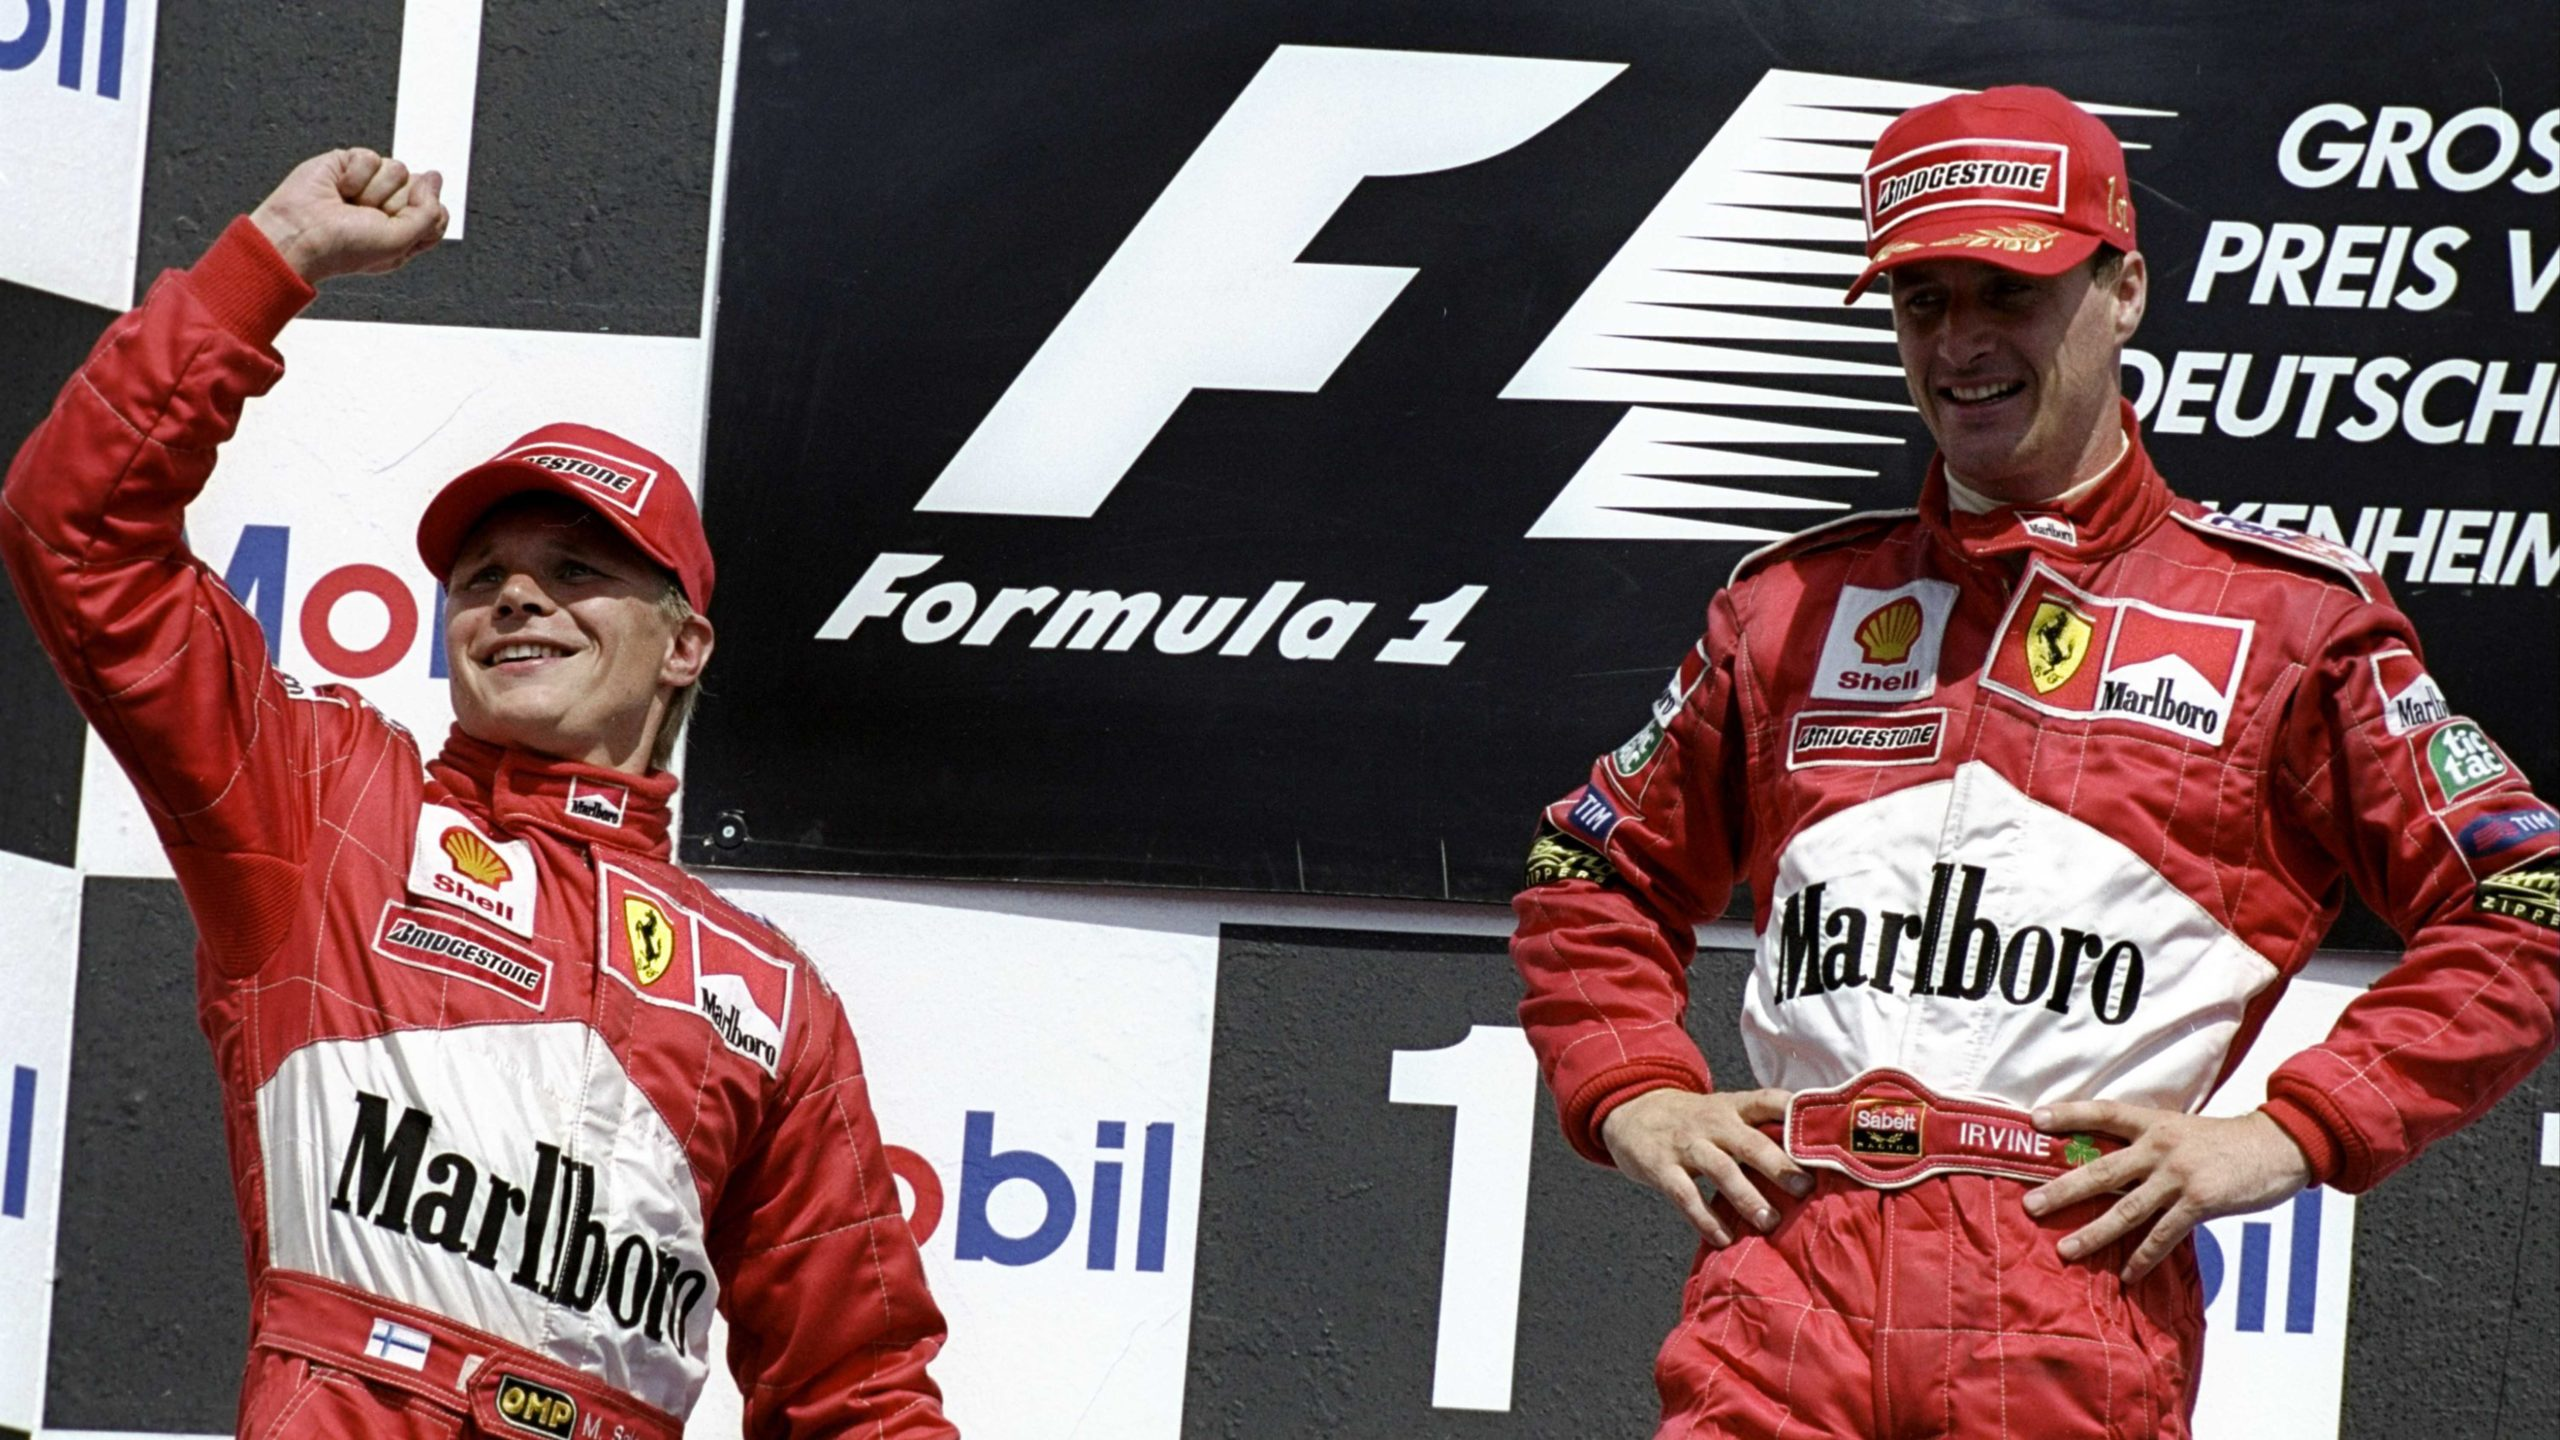 The Ferrari F1 stand-in who almost won: Mika Salo's '99 German GP